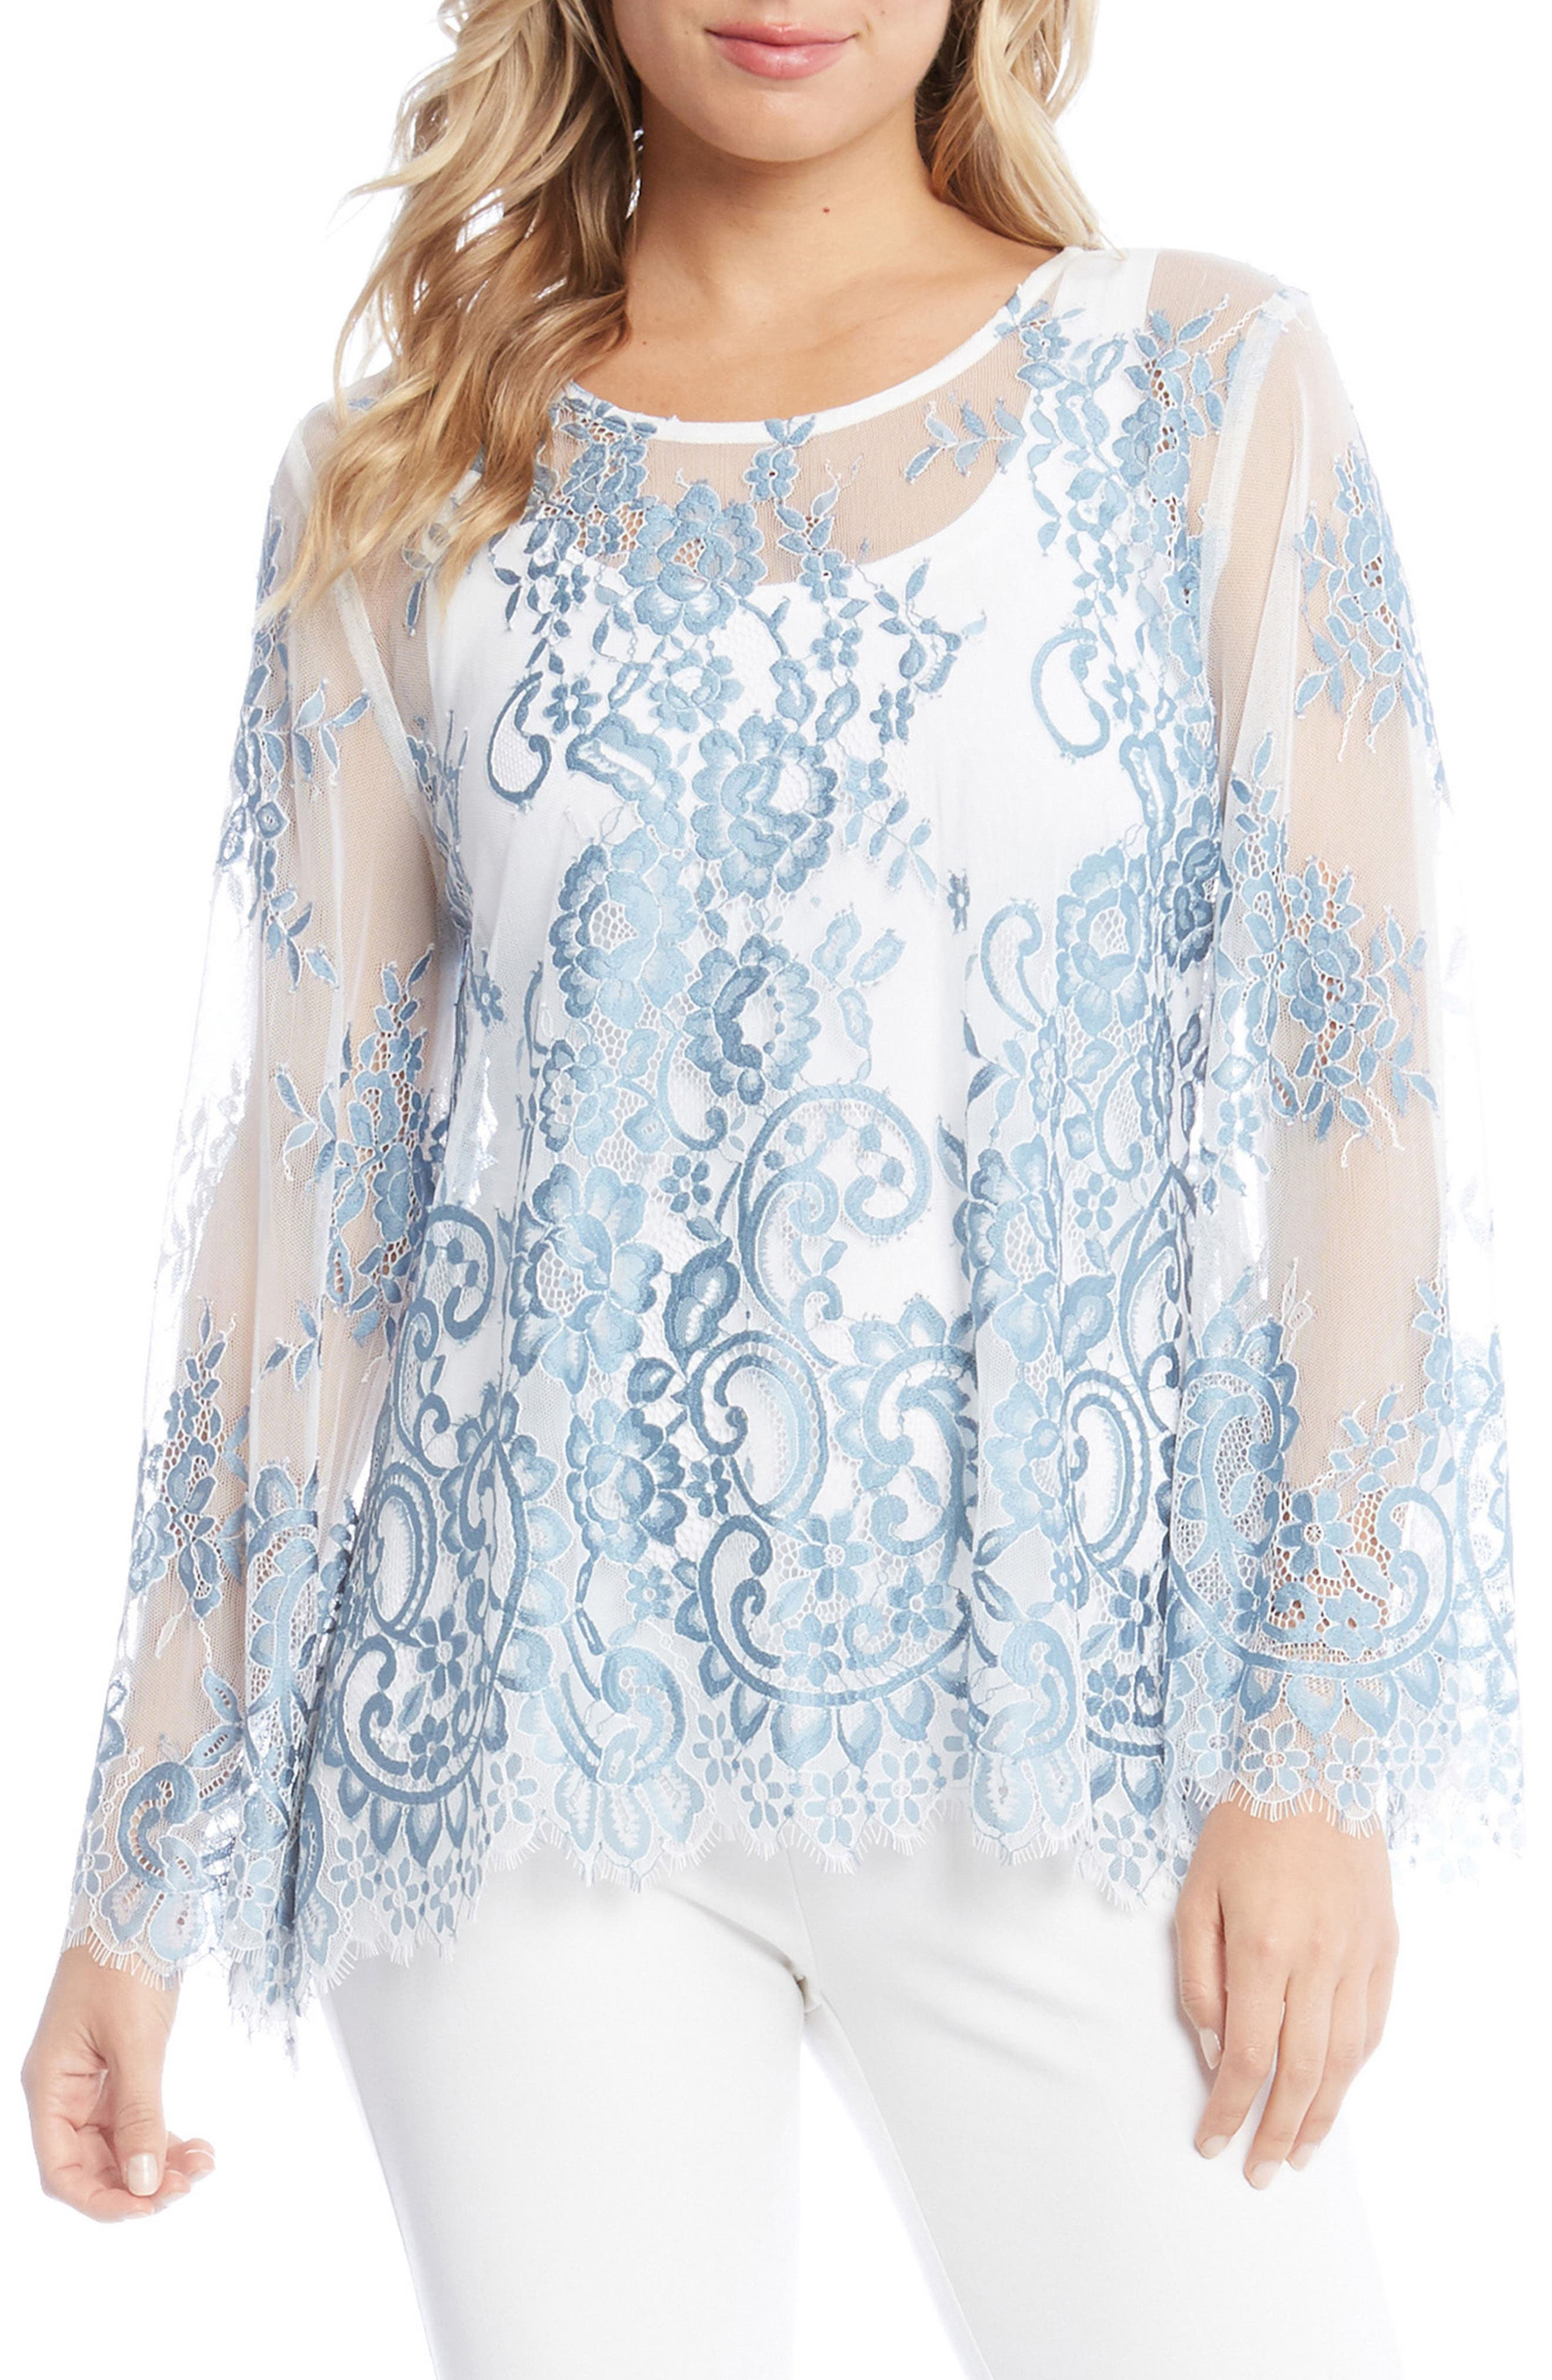 Embroidered Floral Lace Top,                             Main thumbnail 1, color,                             451